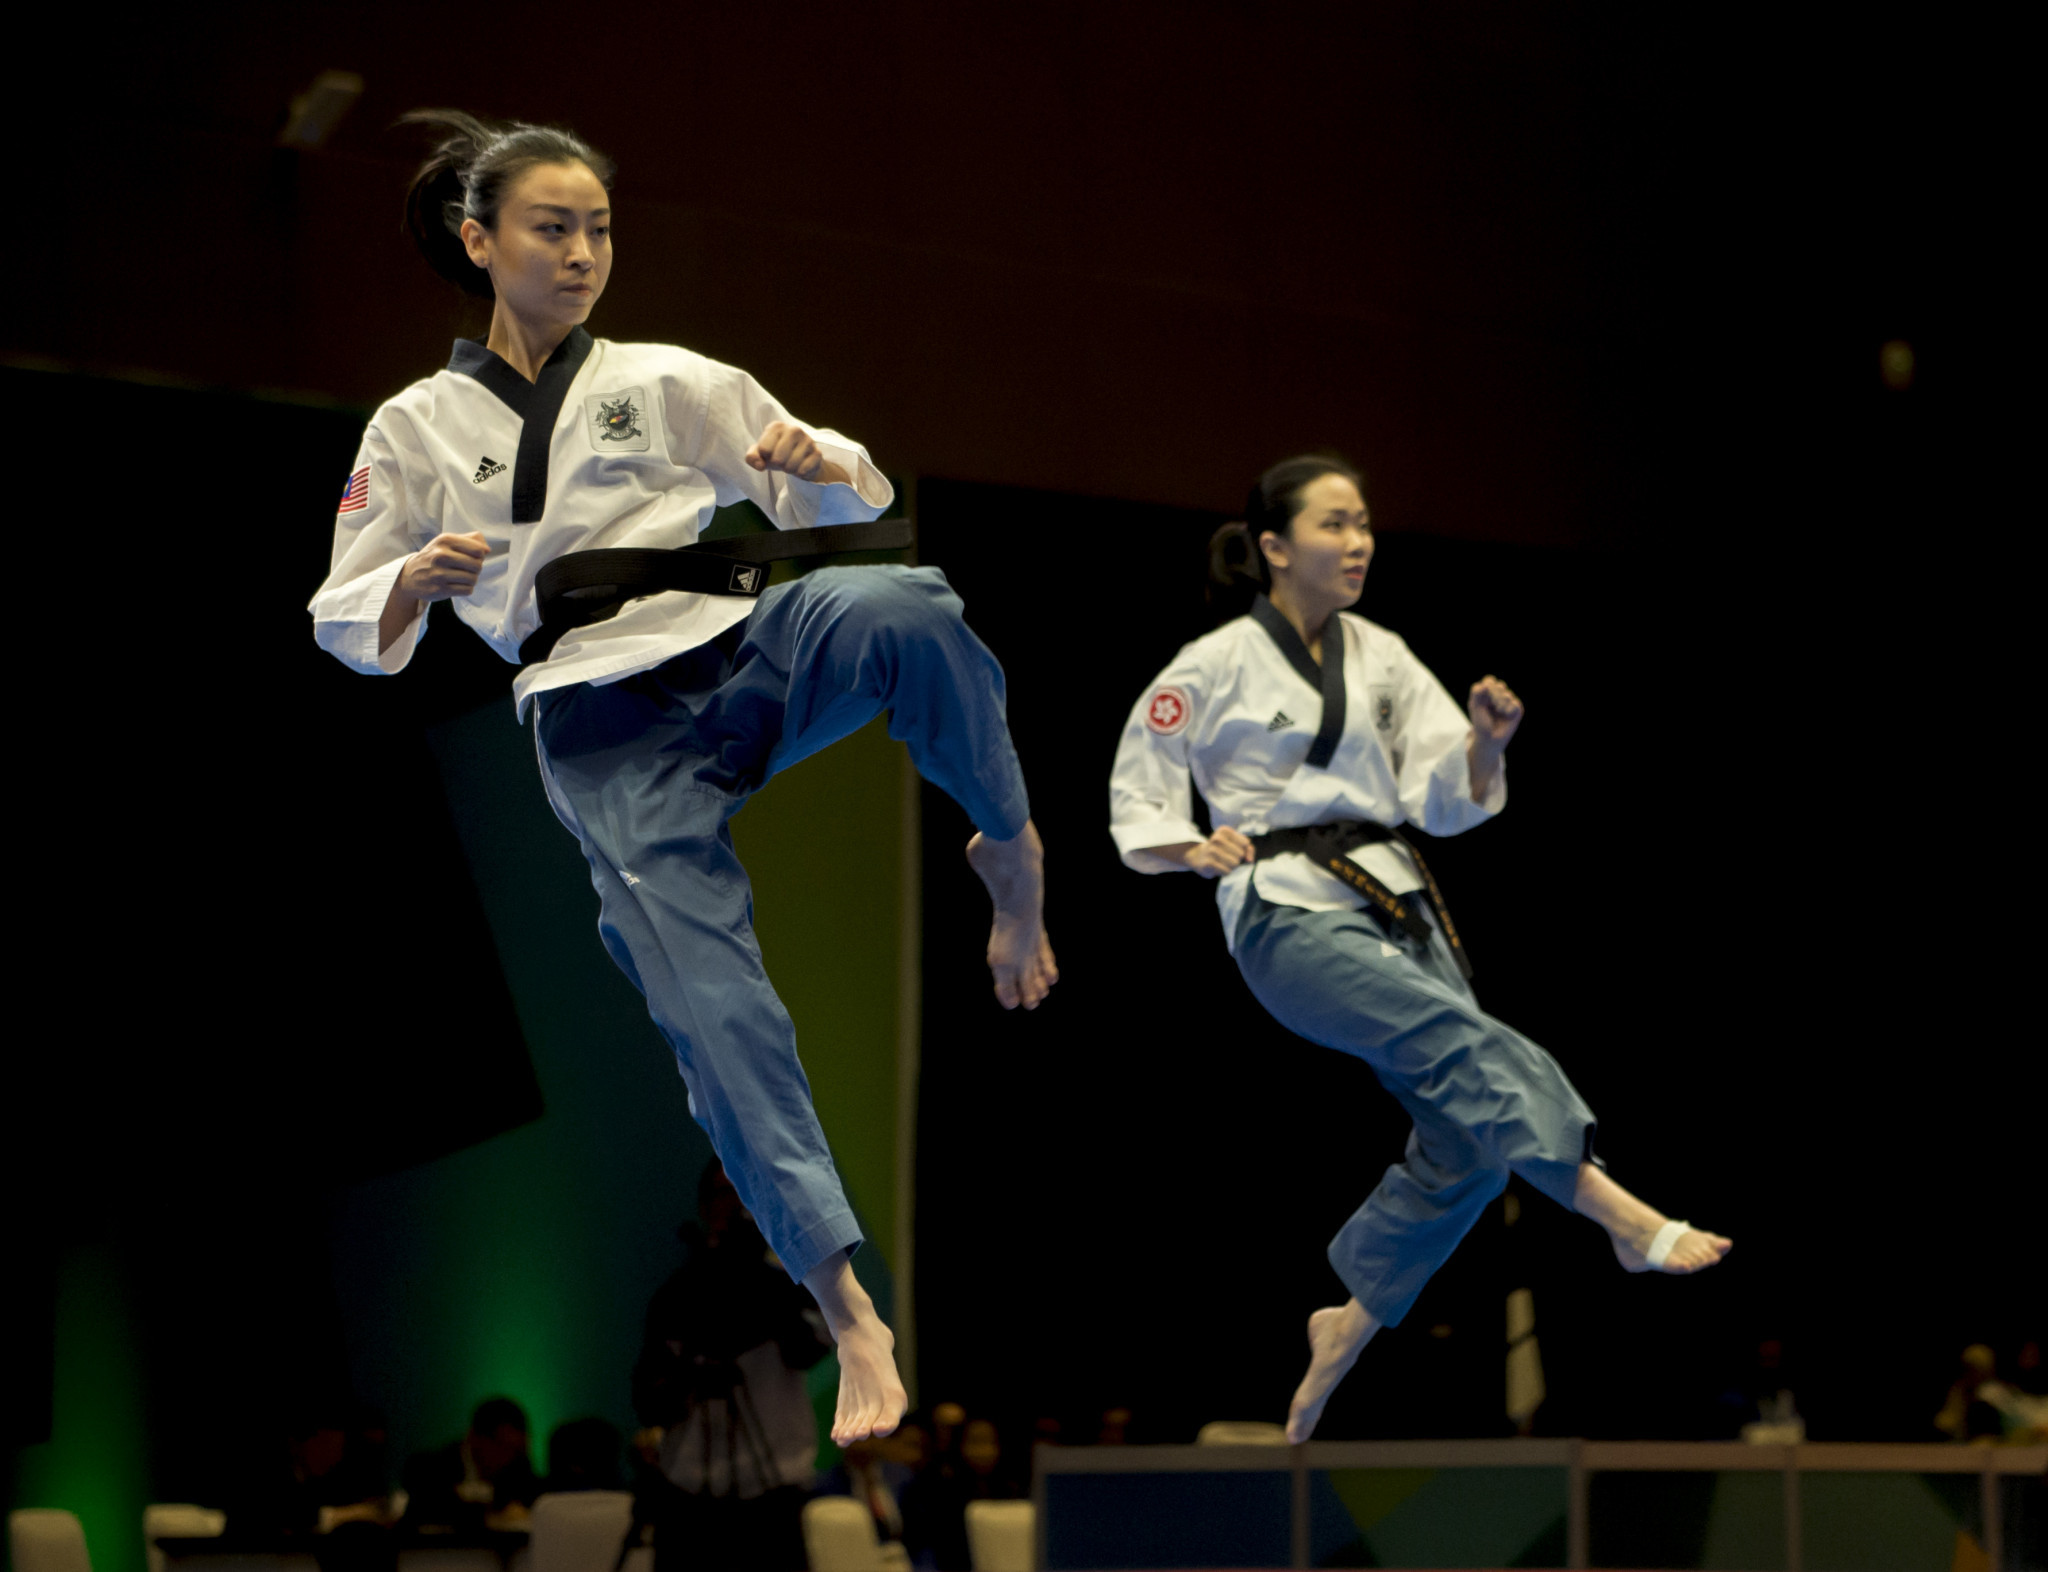 Malaysia eye poomsae taekwondo medal at Asian Games